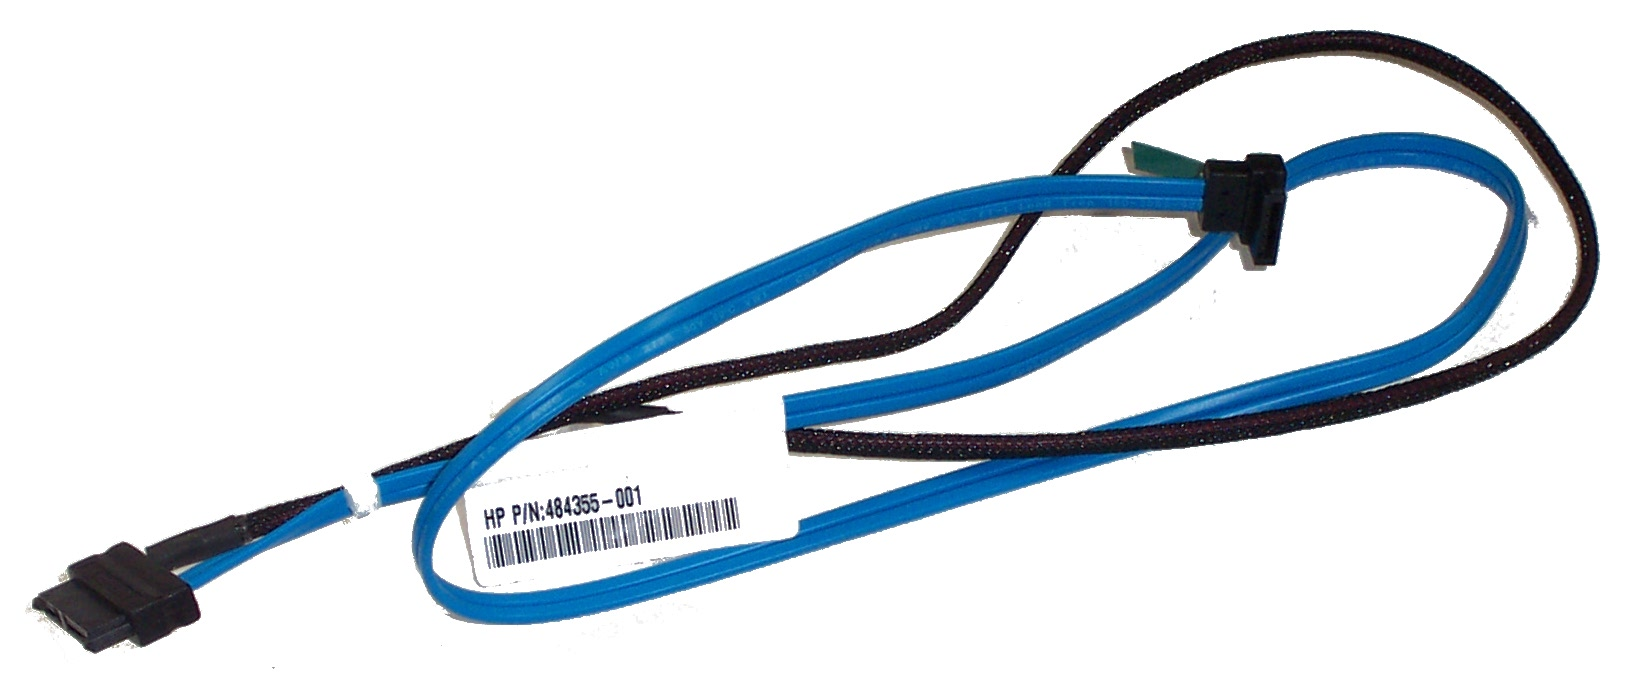 Optical Power Cable : Hp sata optical drive data power cable sps